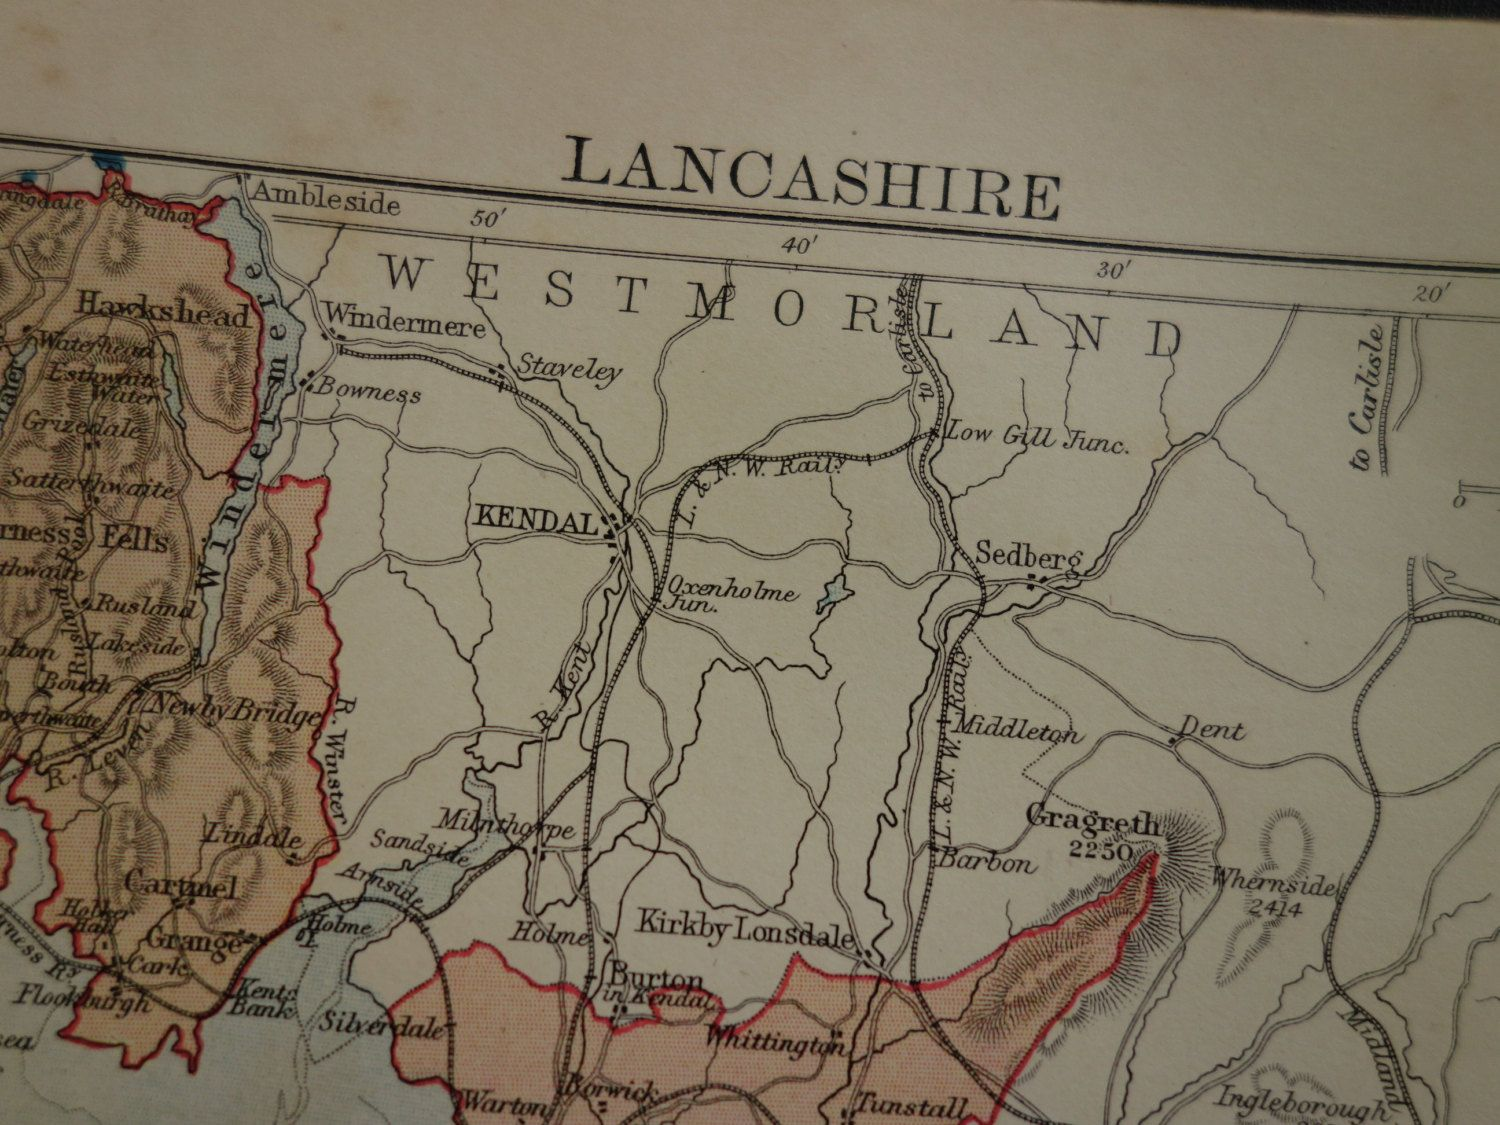 Lanc County Map on chester county map, mount joy lancaster county map, solano county map, auction companies in lancaster county map, sc county map, covered bridge lancaster county map, york county map,